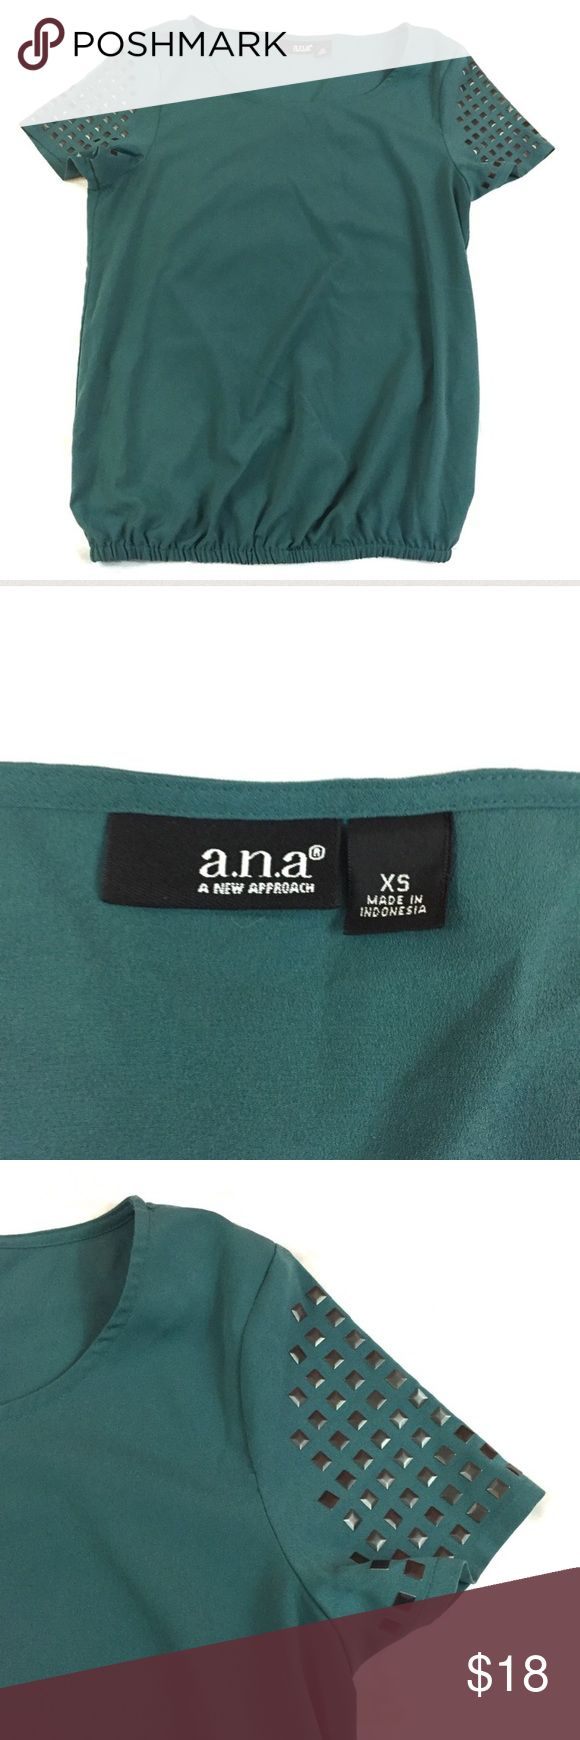 """a.n.a. Jade Green Short Sleeve Blouse w/ Studs XS a.n.a. A New Approach from JC Penney women's top size XS. Short sleeve with studs. Elastic at waist. Length 24"""" Armpit to armpit 17.5"""" a.n.a Tops Blouses"""